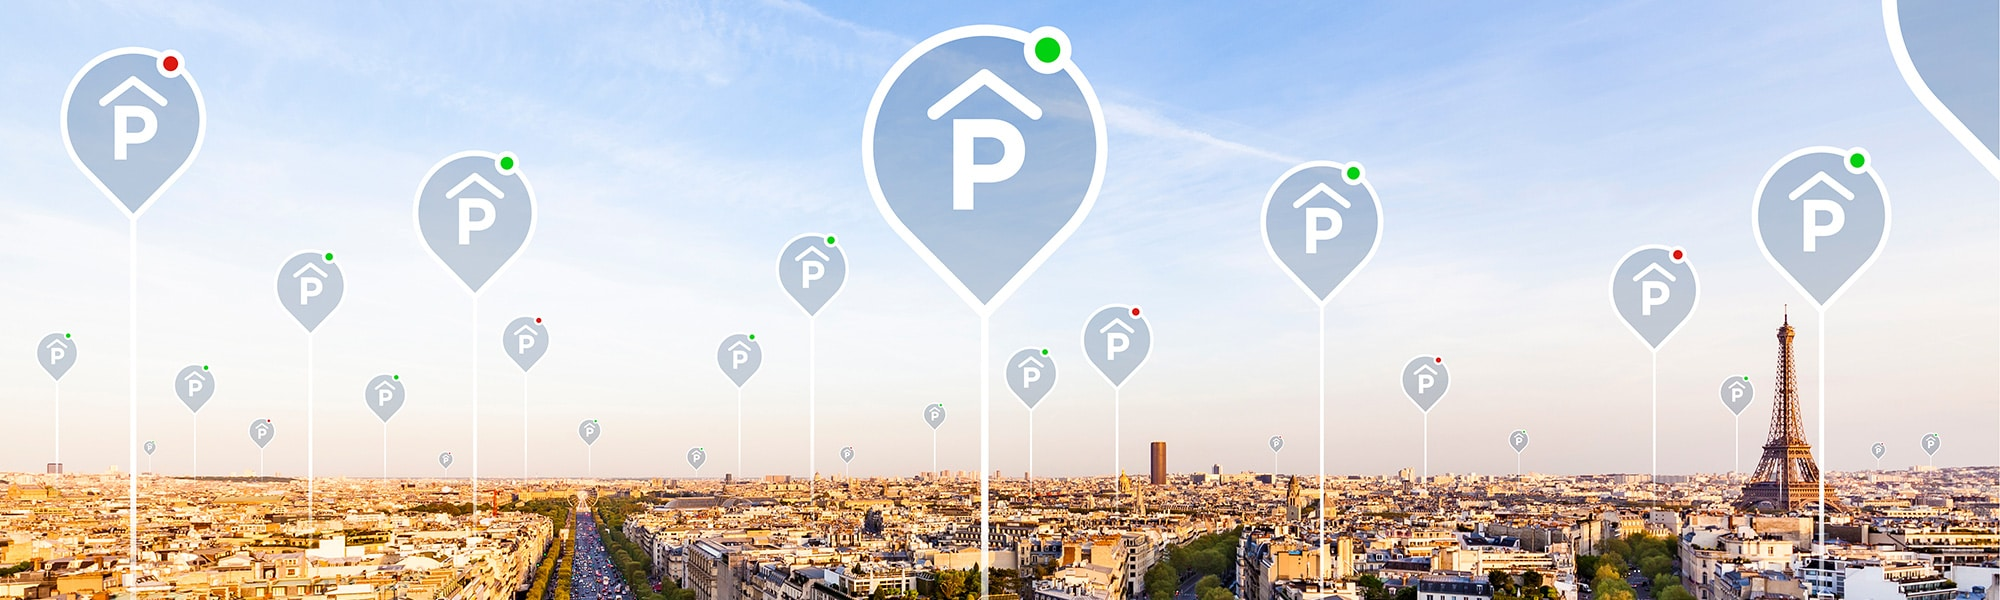 How to use POI data to power location-based apps